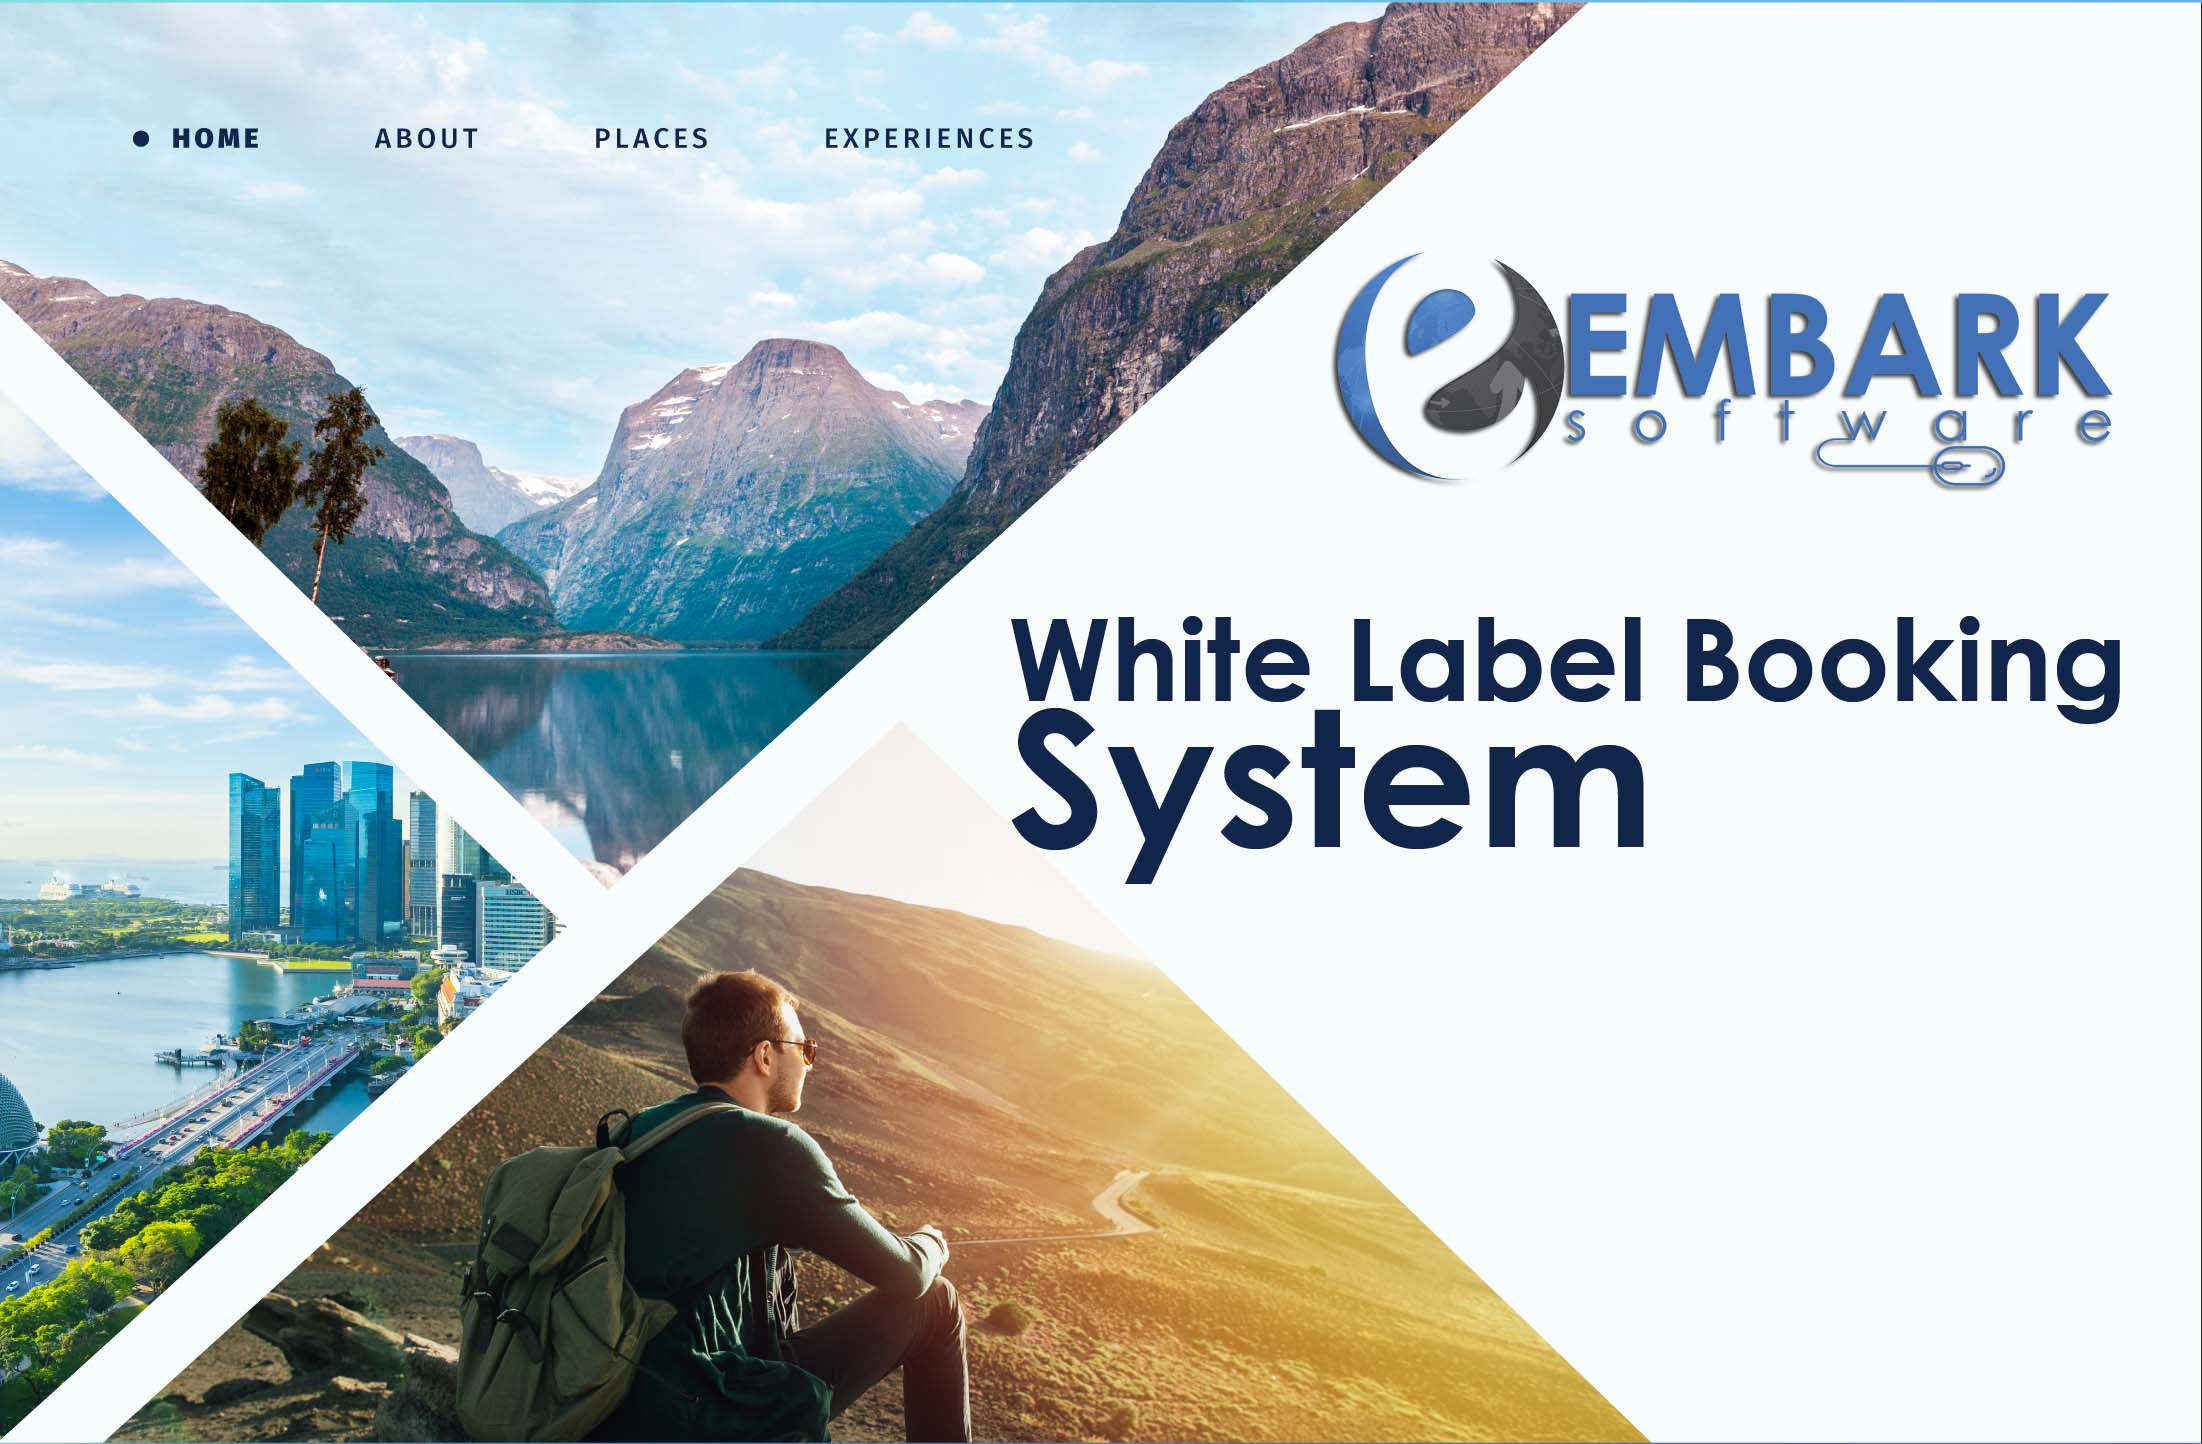 Because Yes! White Label Booking System Makes Everything That Simple